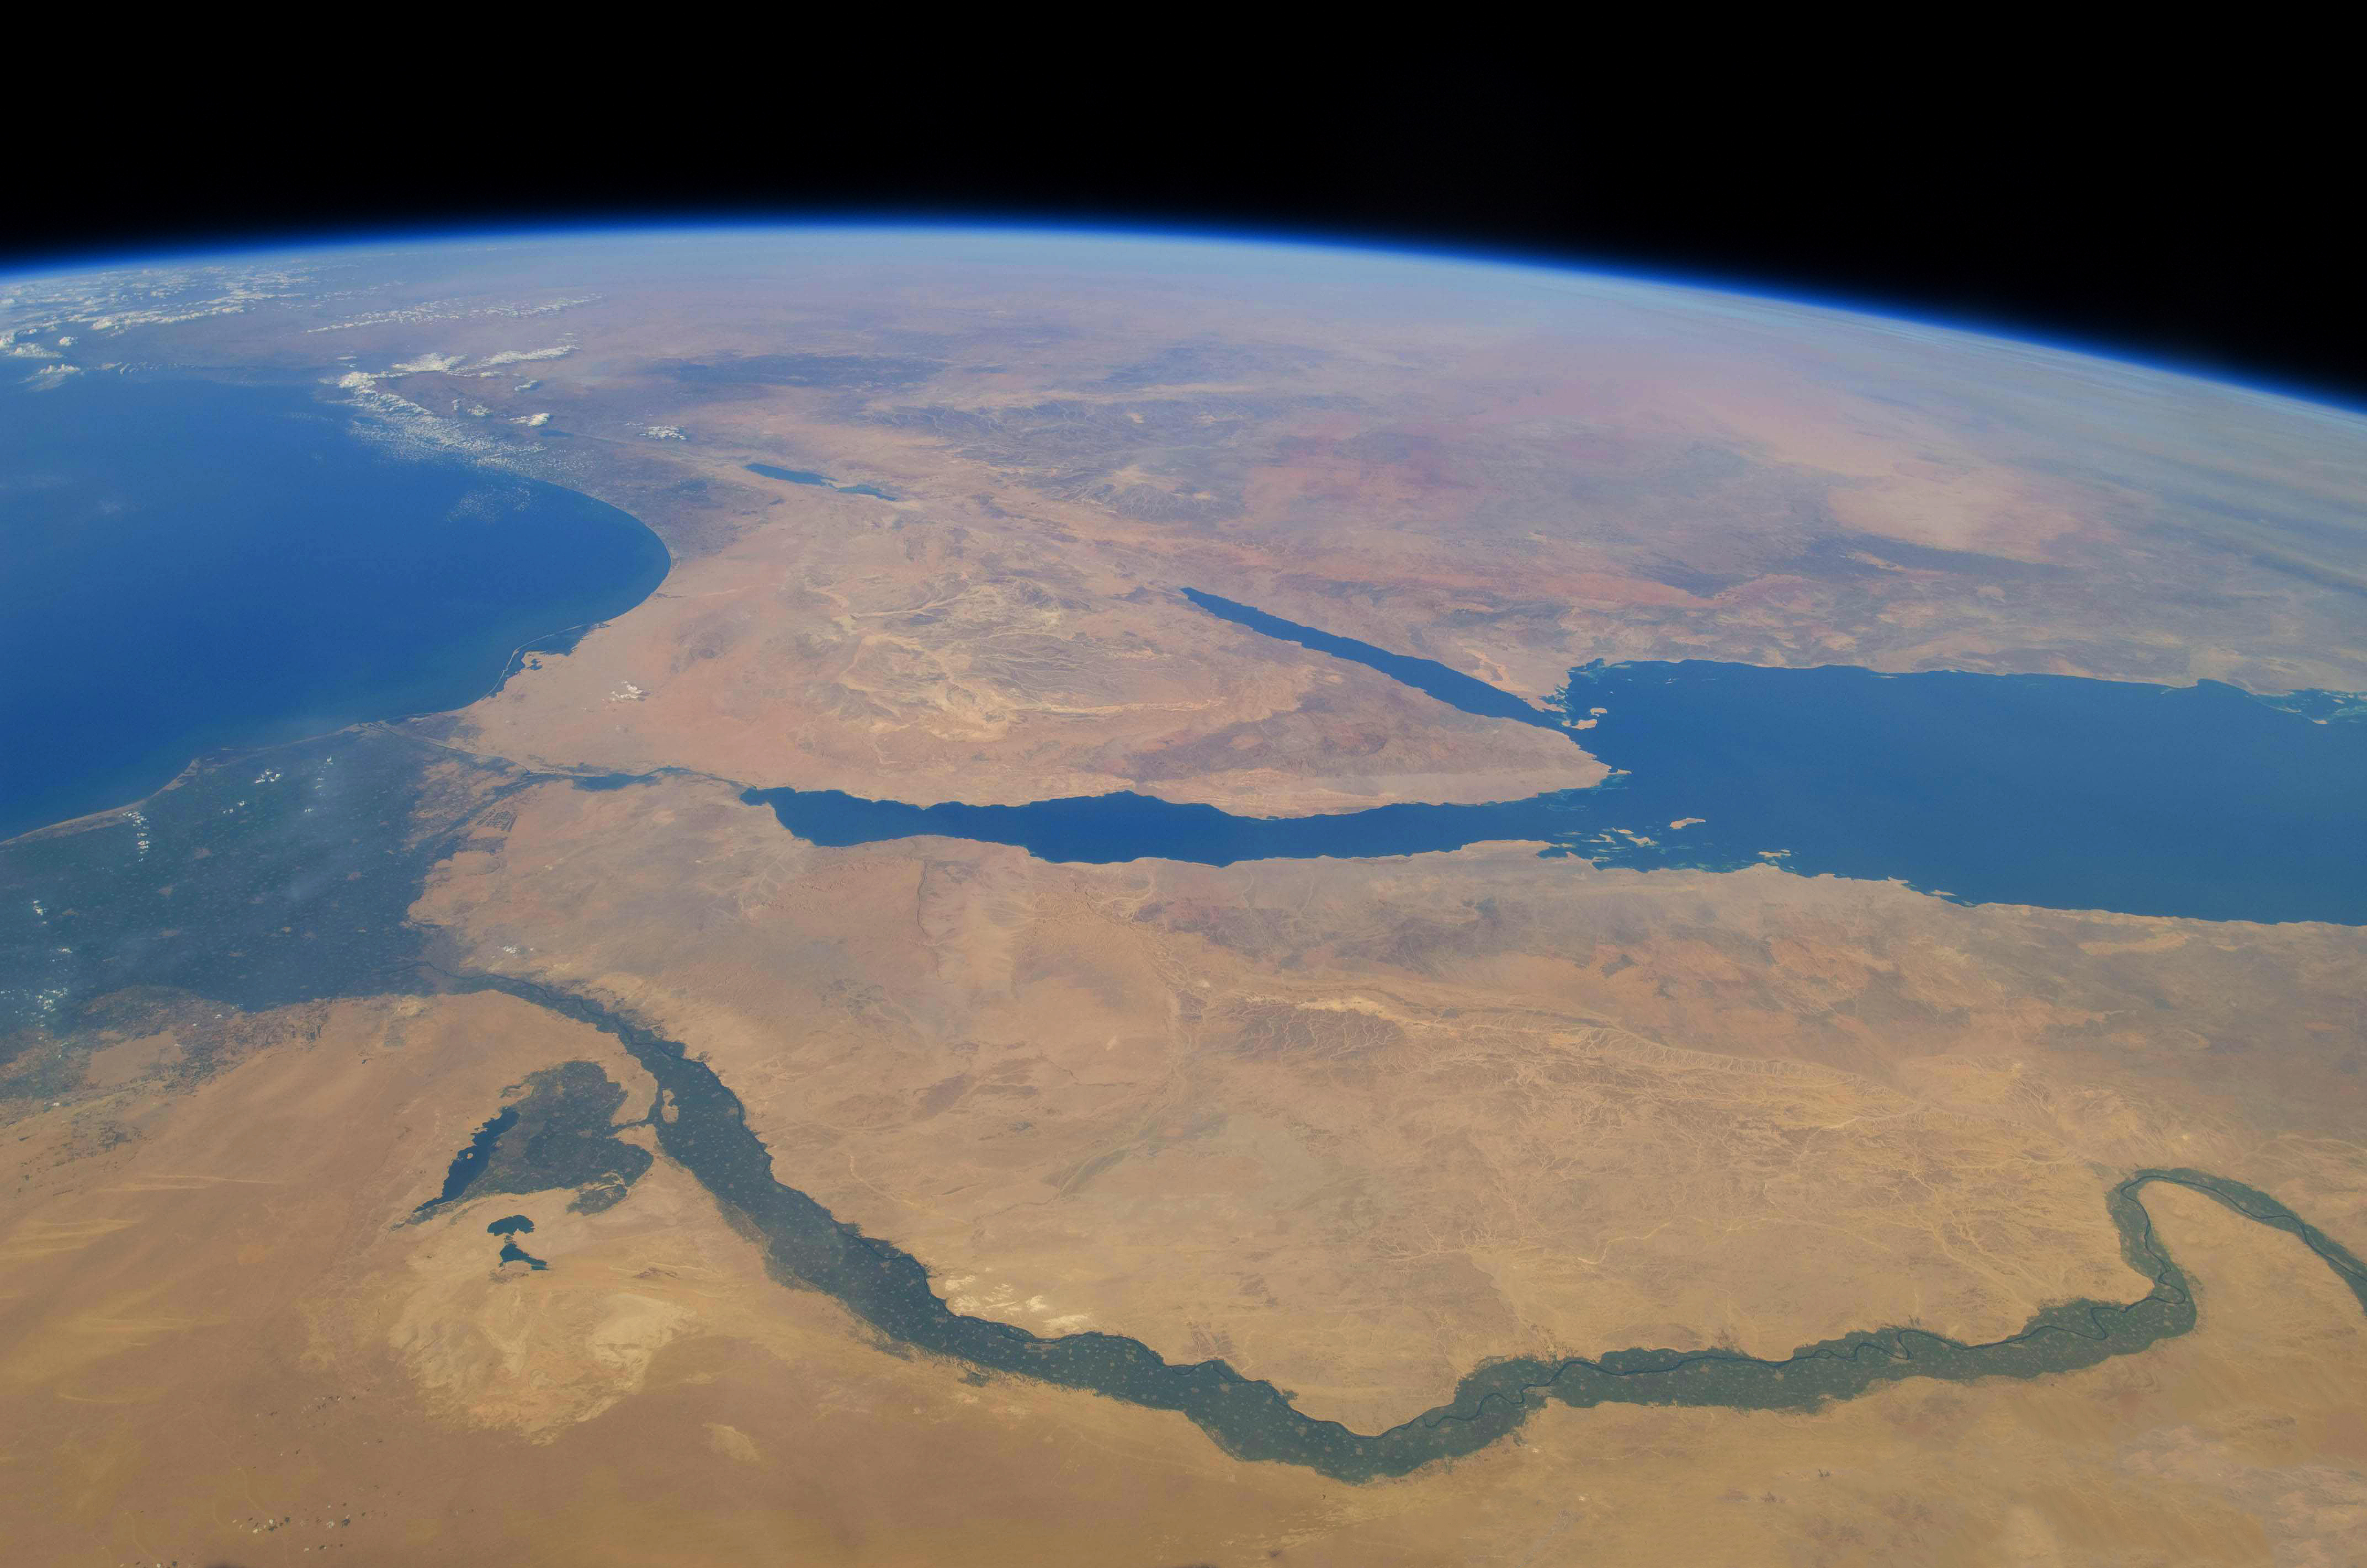 Iss Wallpaper Hd Egypt From Space Published By Zezo7 On Day 2 631